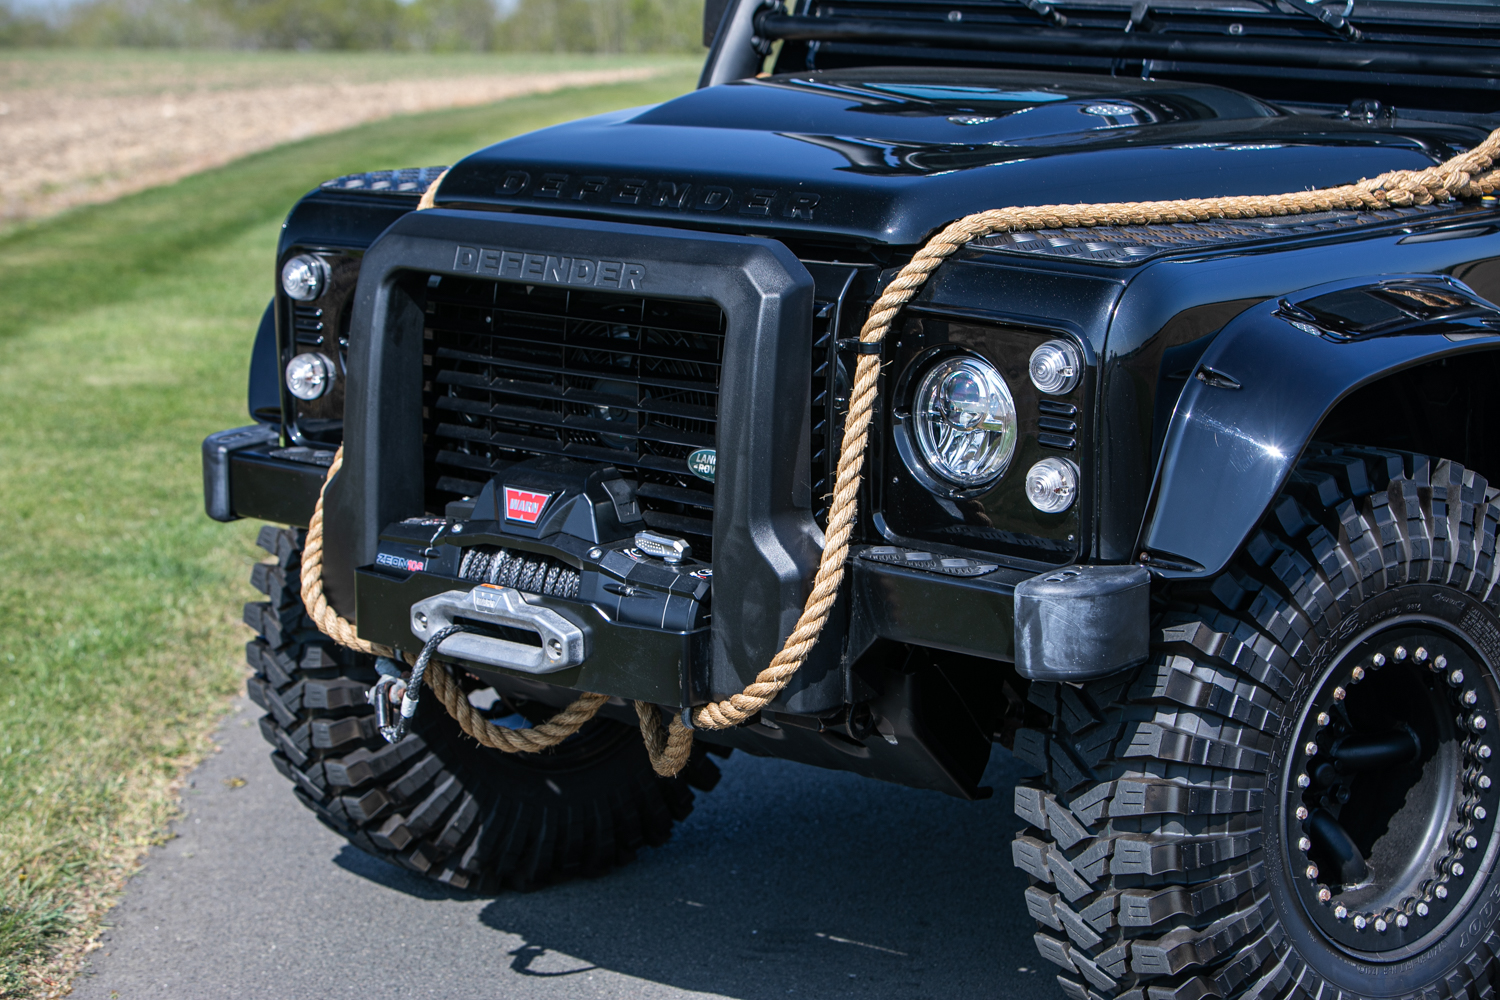 2015 Land Rover Defender 110 SVX 'Spectre' JB24 - Image 19 of 26